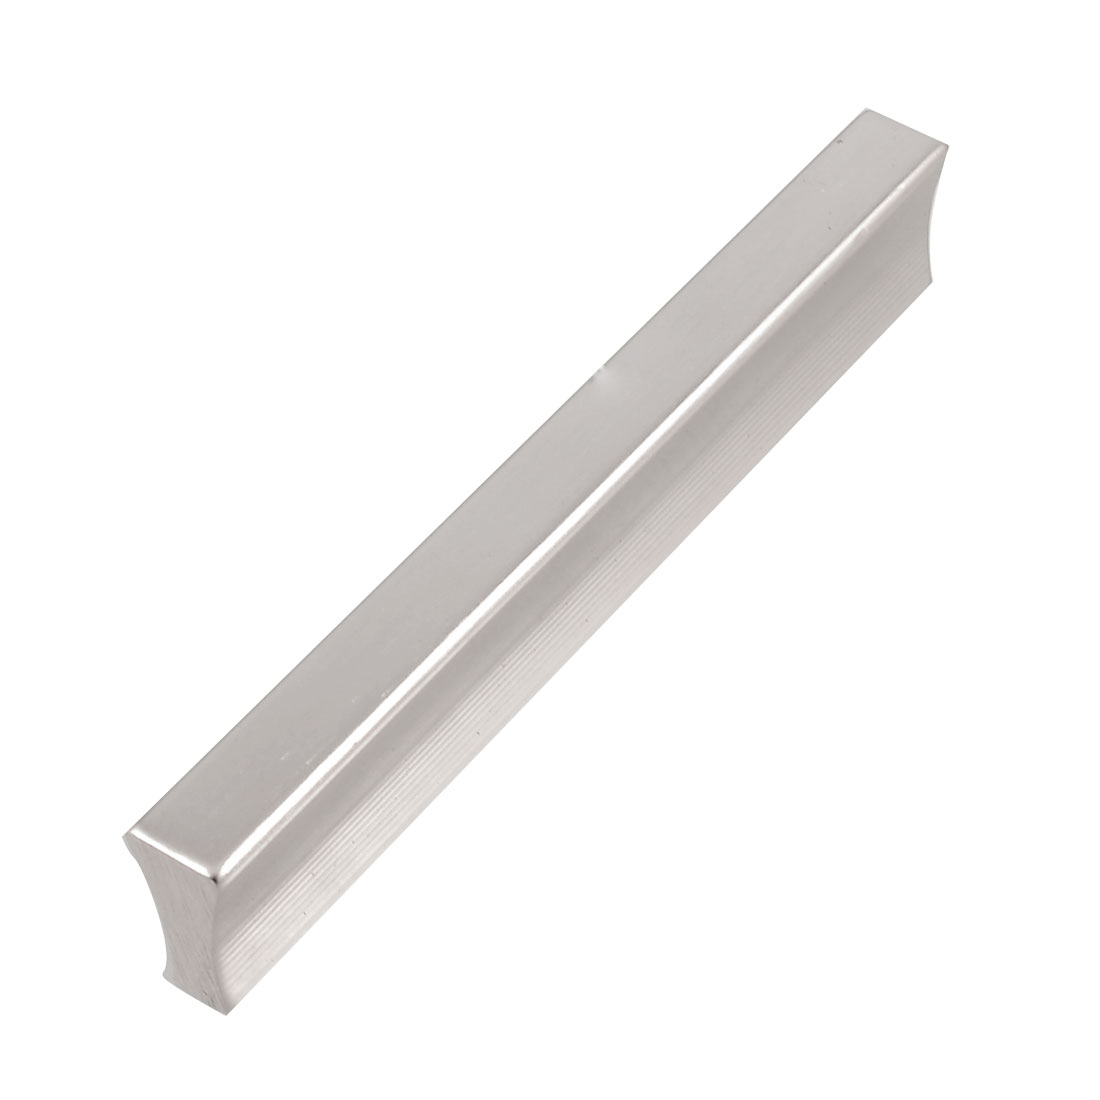 Drawer Hardware 11cm Long Silver Tone Aliminium Pull Handle